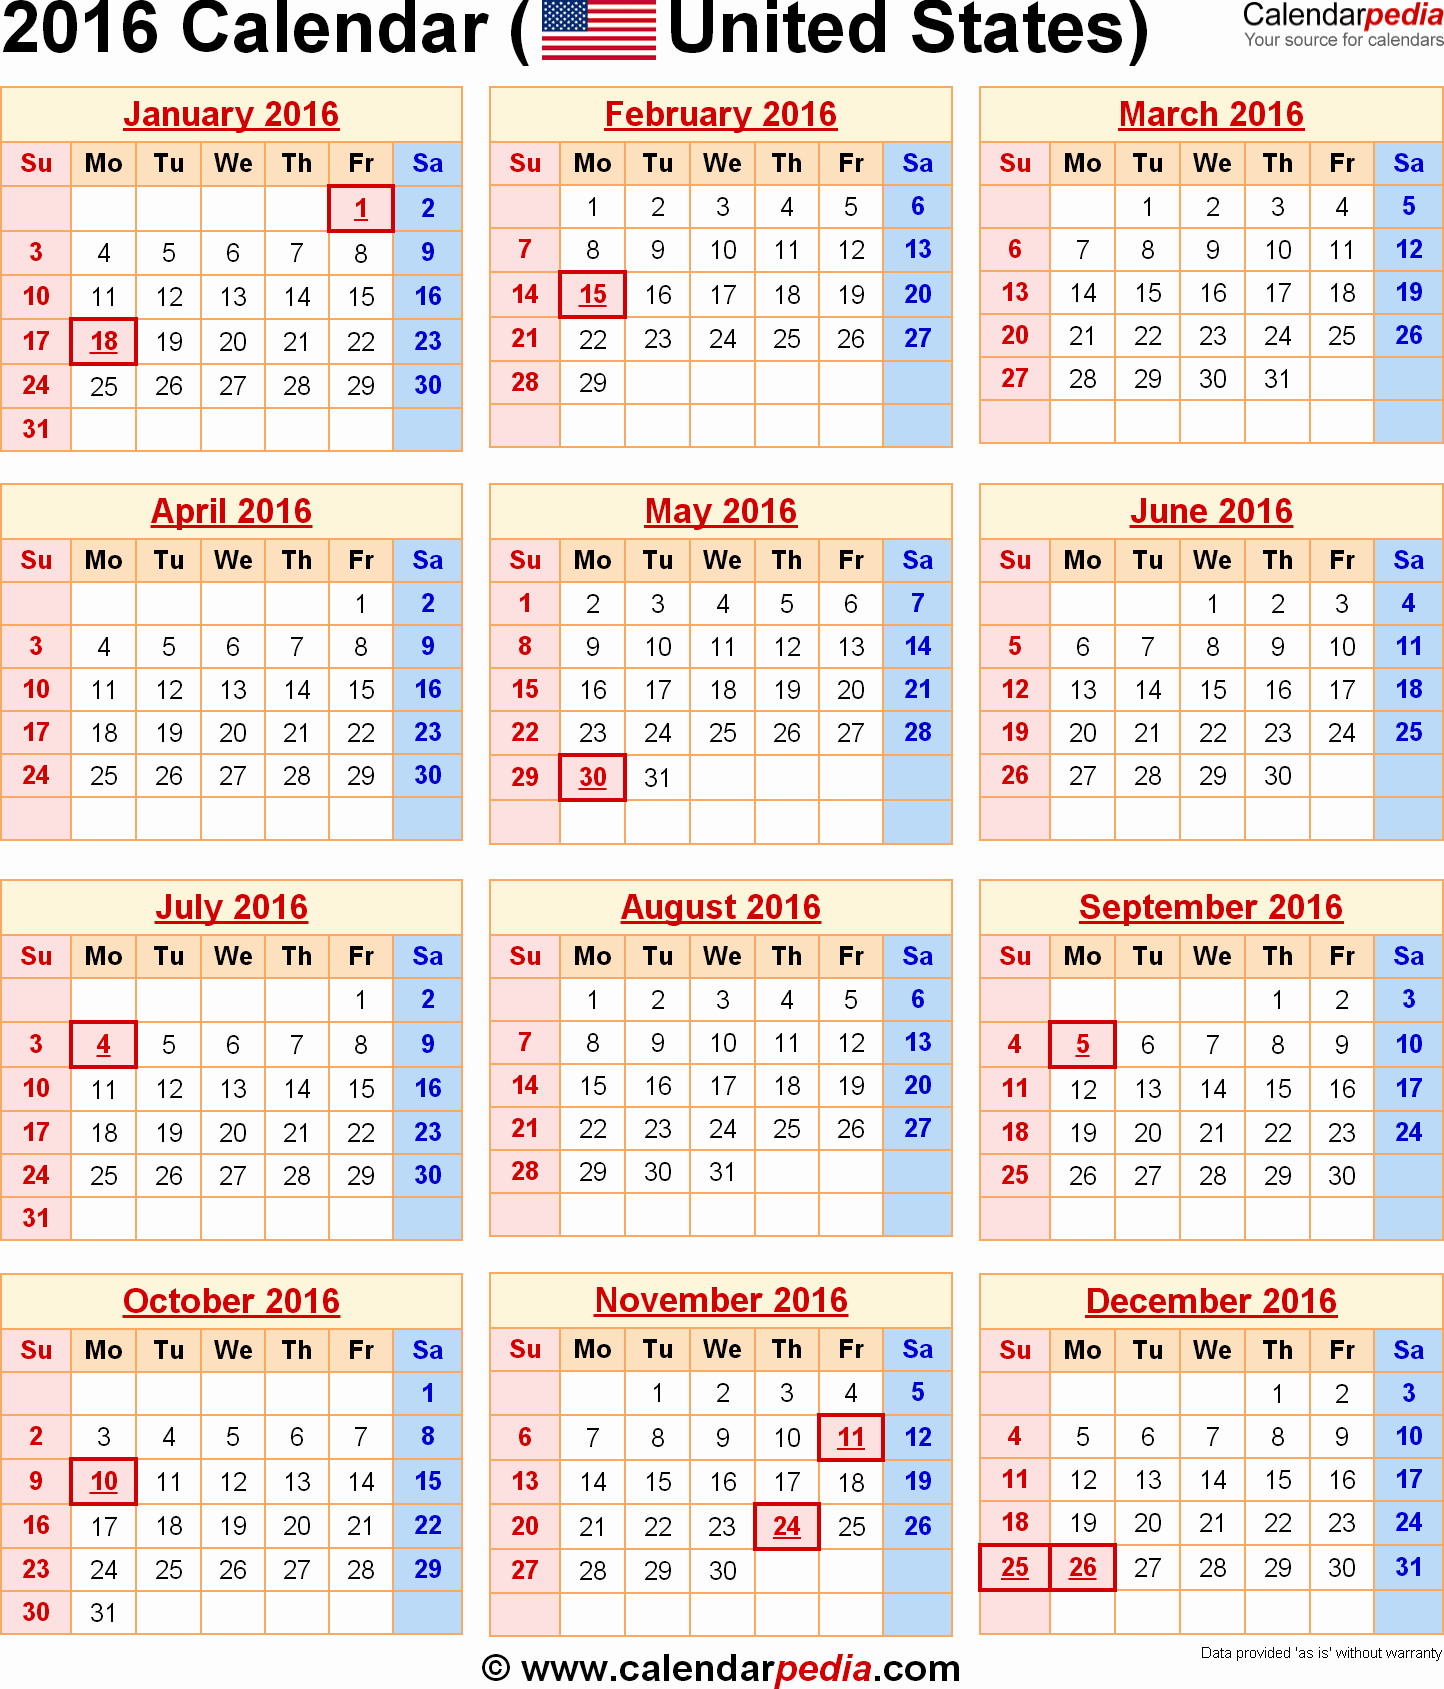 Excel 2016 Calendar with Holidays Beautiful 2016 Calendar with Federal Holidays & Excel Pdf Word